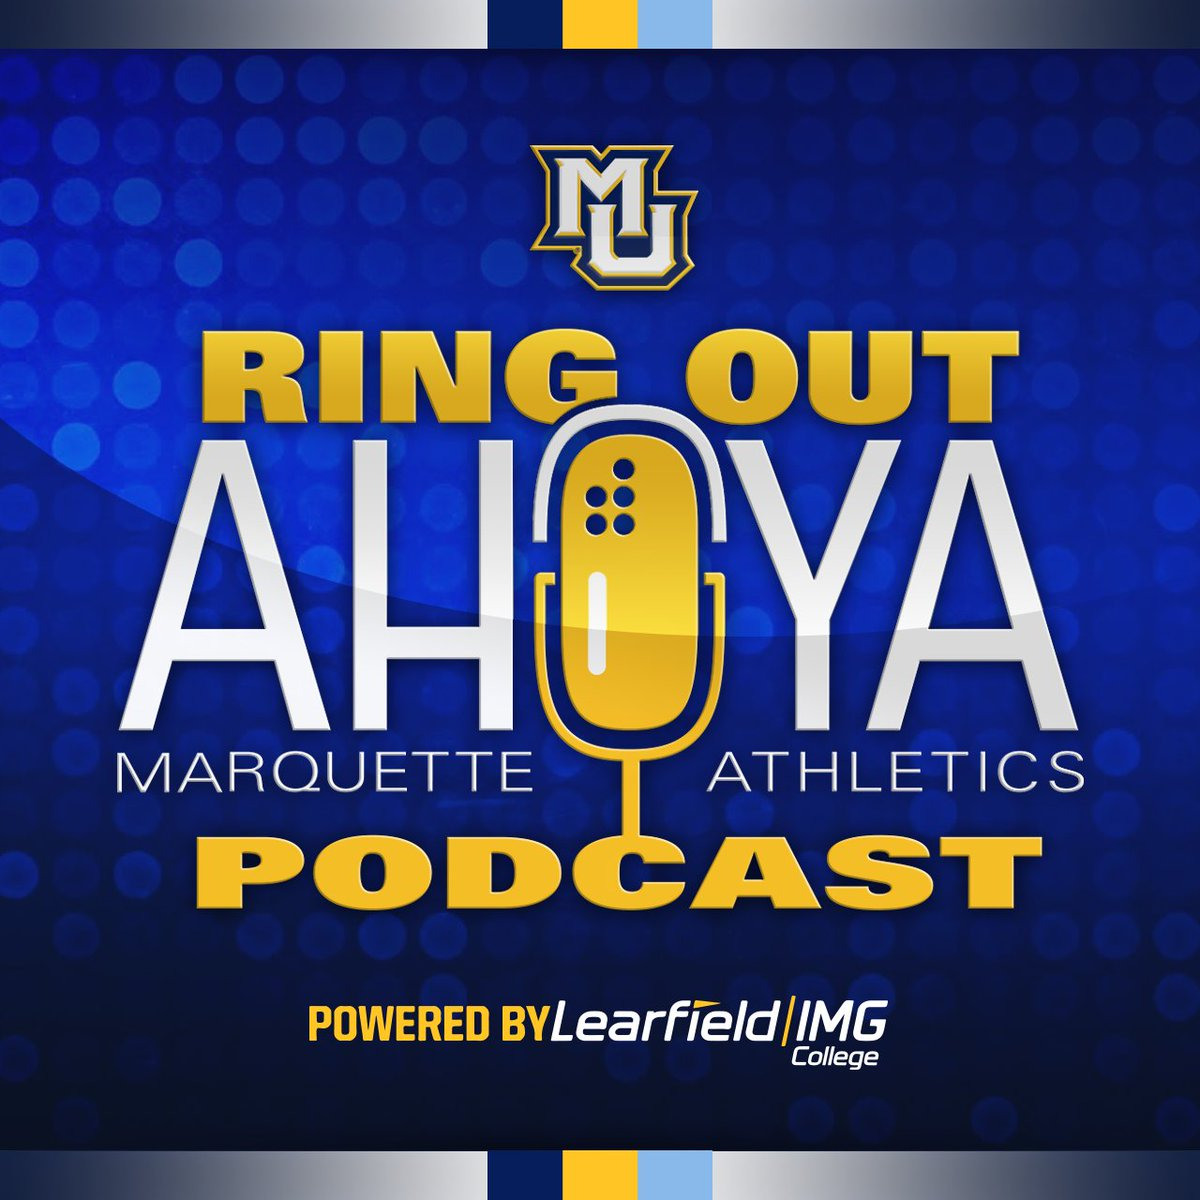 #mubb Ring Out Ahoya Podcast | @DienerTravis with some breaking news, talks about when he knew @GoldenEaglesTBT was going to win @thetournament and what's next.  LISTEN: https://t.co/7EO08L7Vwb https://t.co/VghhpIF6c8